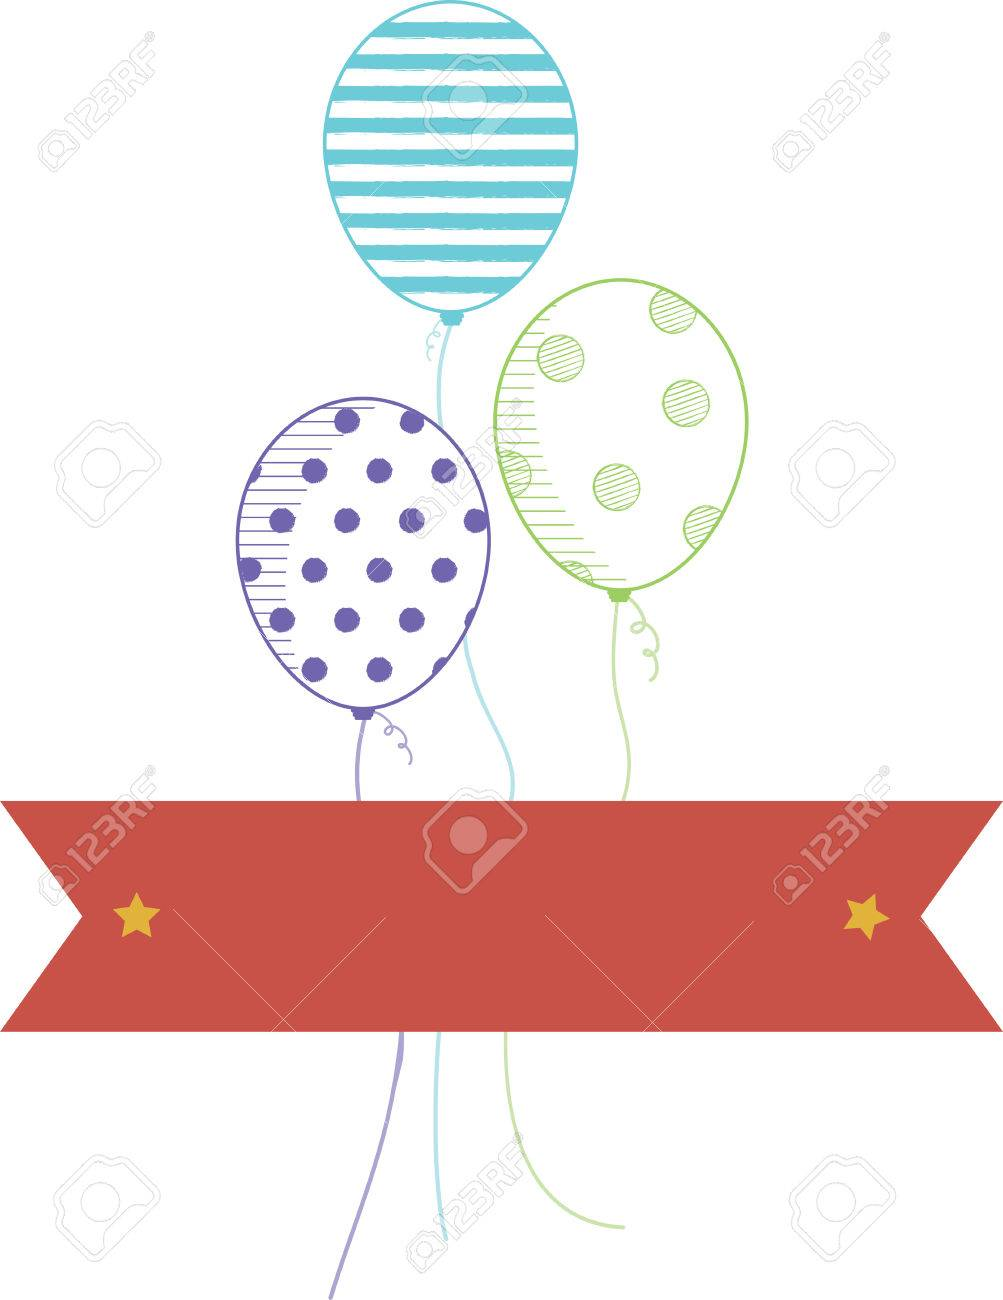 Our Cheery Balloons Deliver A Perfect Birthday Wish To Lucky Girl Stitch It On